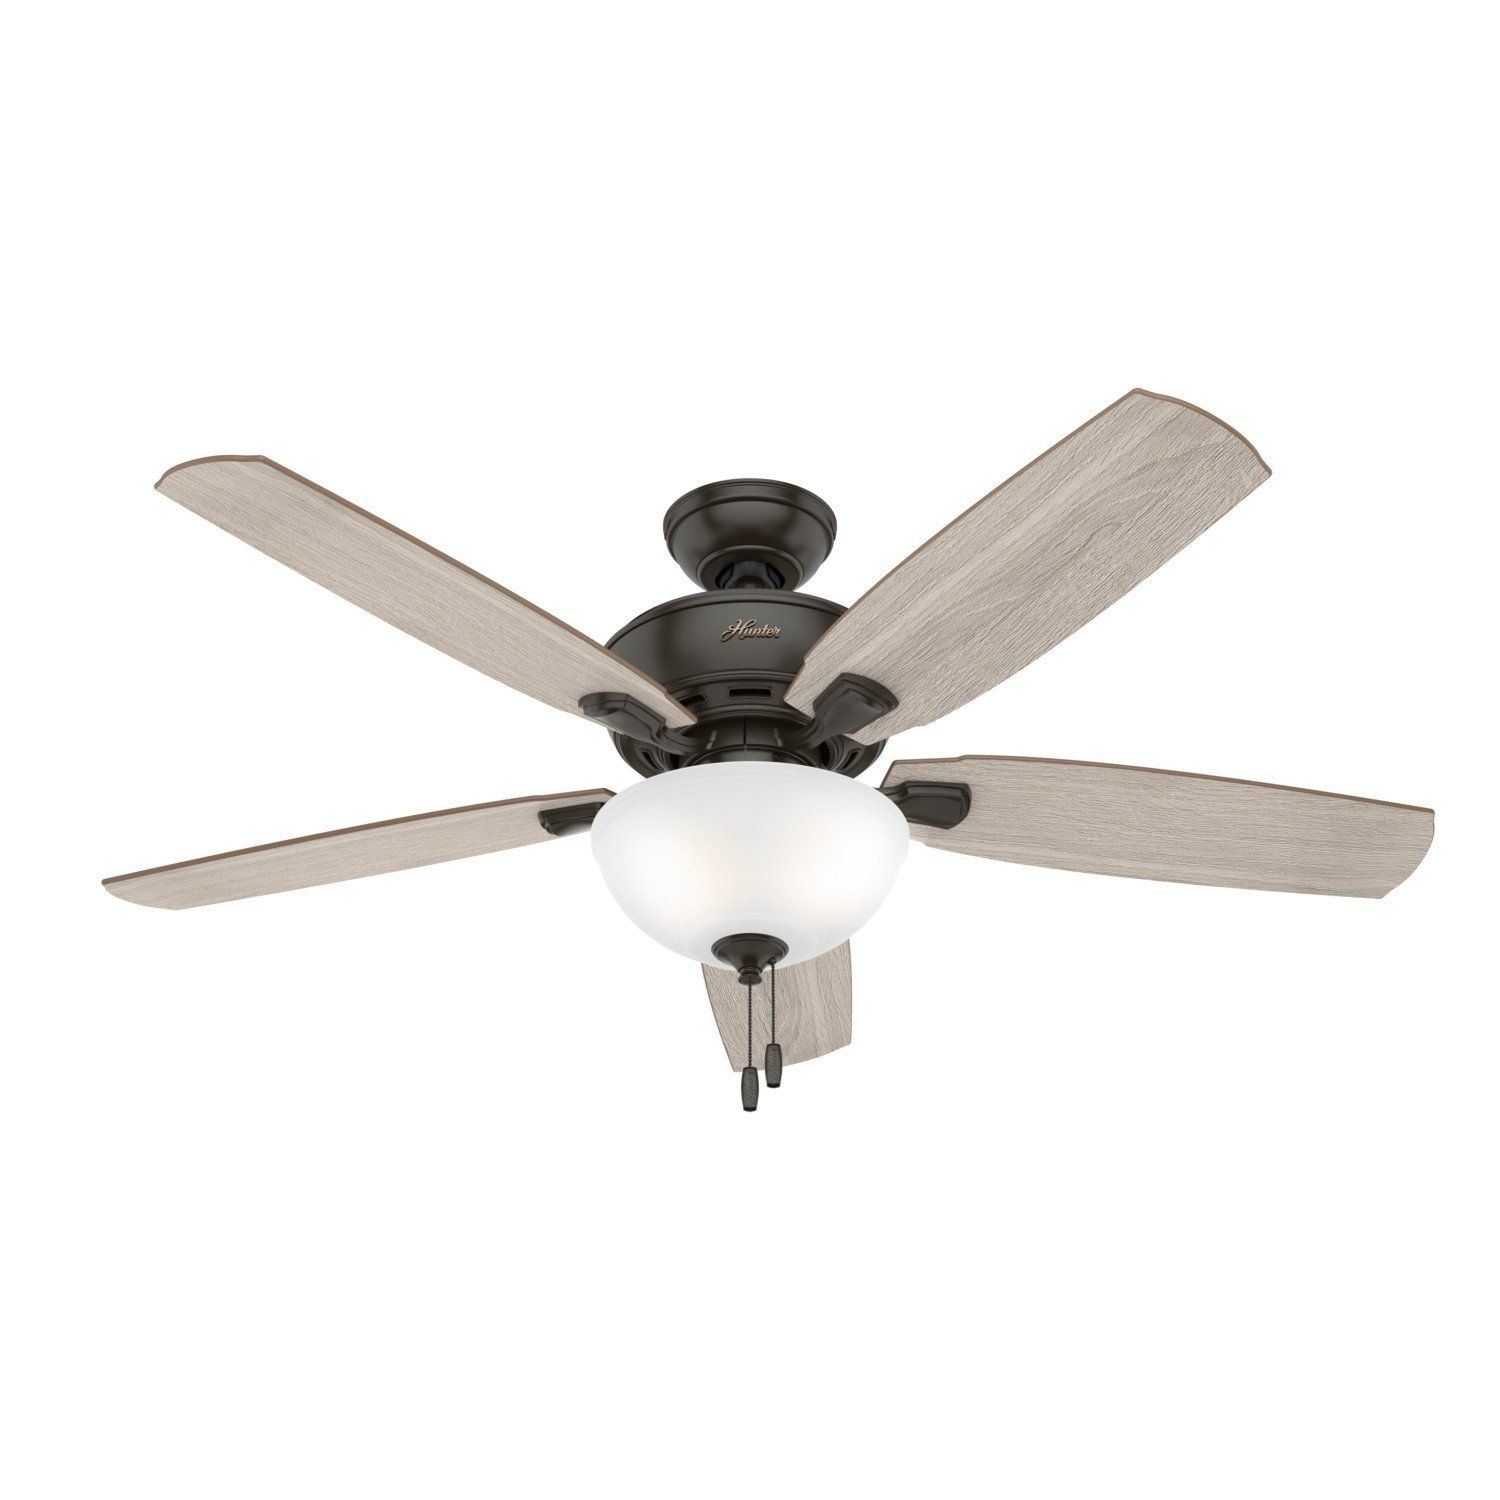 Quick Ceiling Fan Makeover Simply Remove The Shades And Screws And Use Edison Bulbs For A More Modern I Ceiling Fan Makeover Ceiling Fan With Light Fan Light